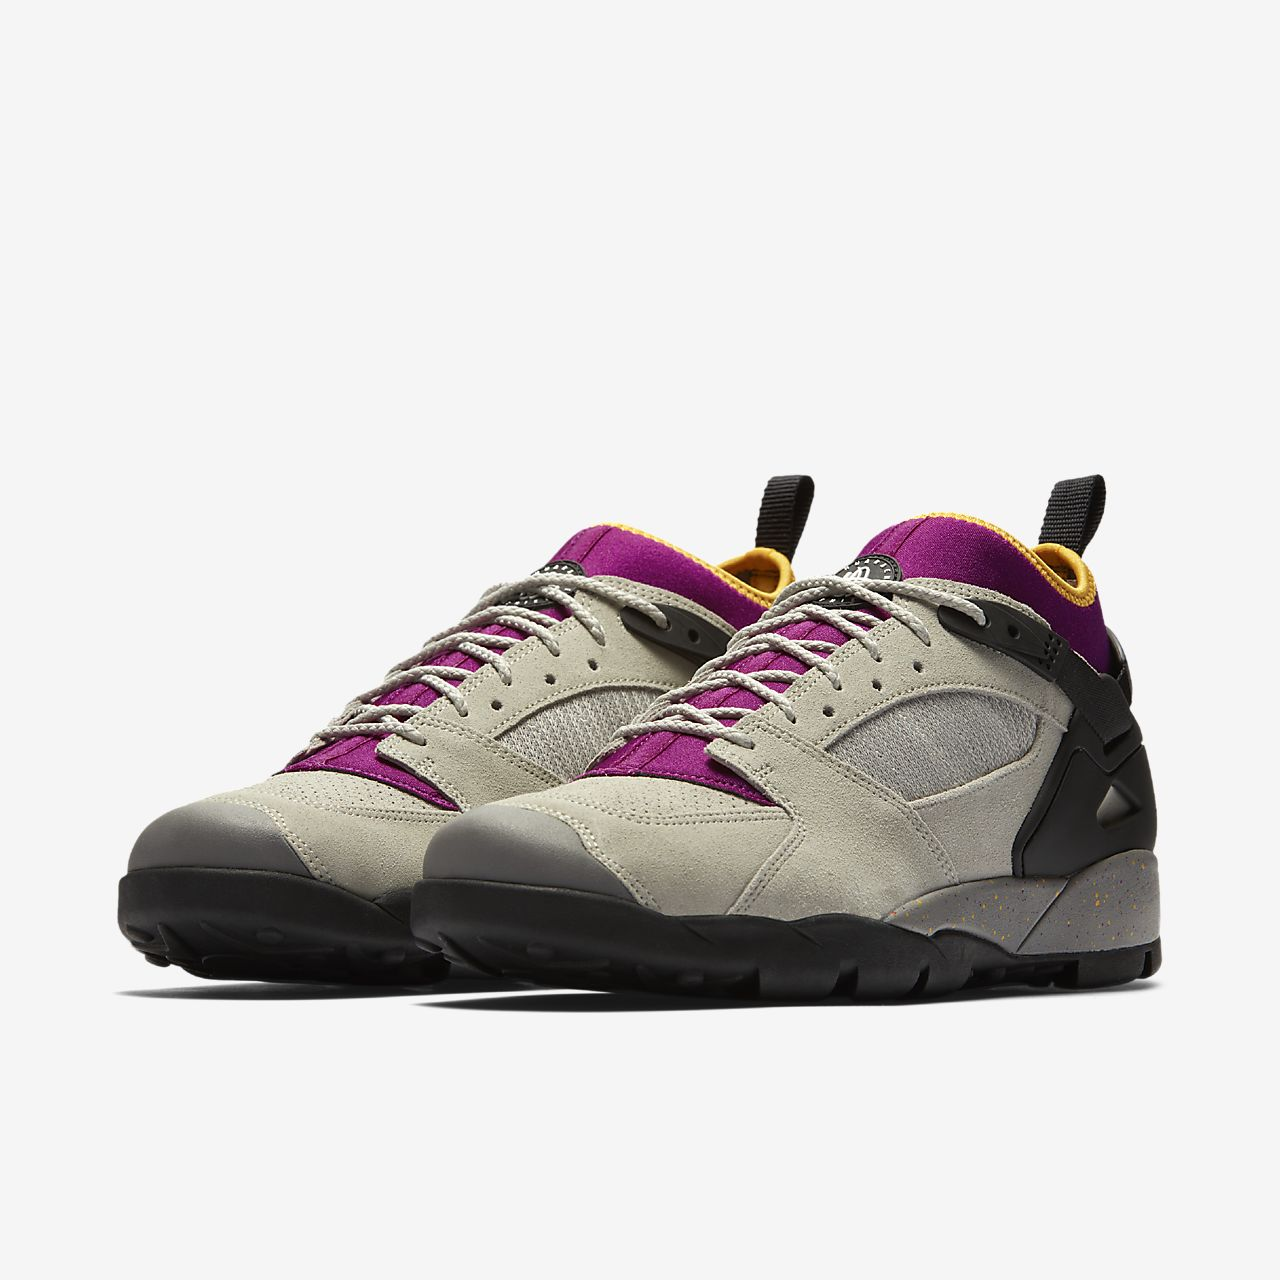 quality design f8860 b3a19 Low Resolution Nike ACG Air Revaderchi Herenschoen Nike ACG Air Revaderchi  Herenschoen